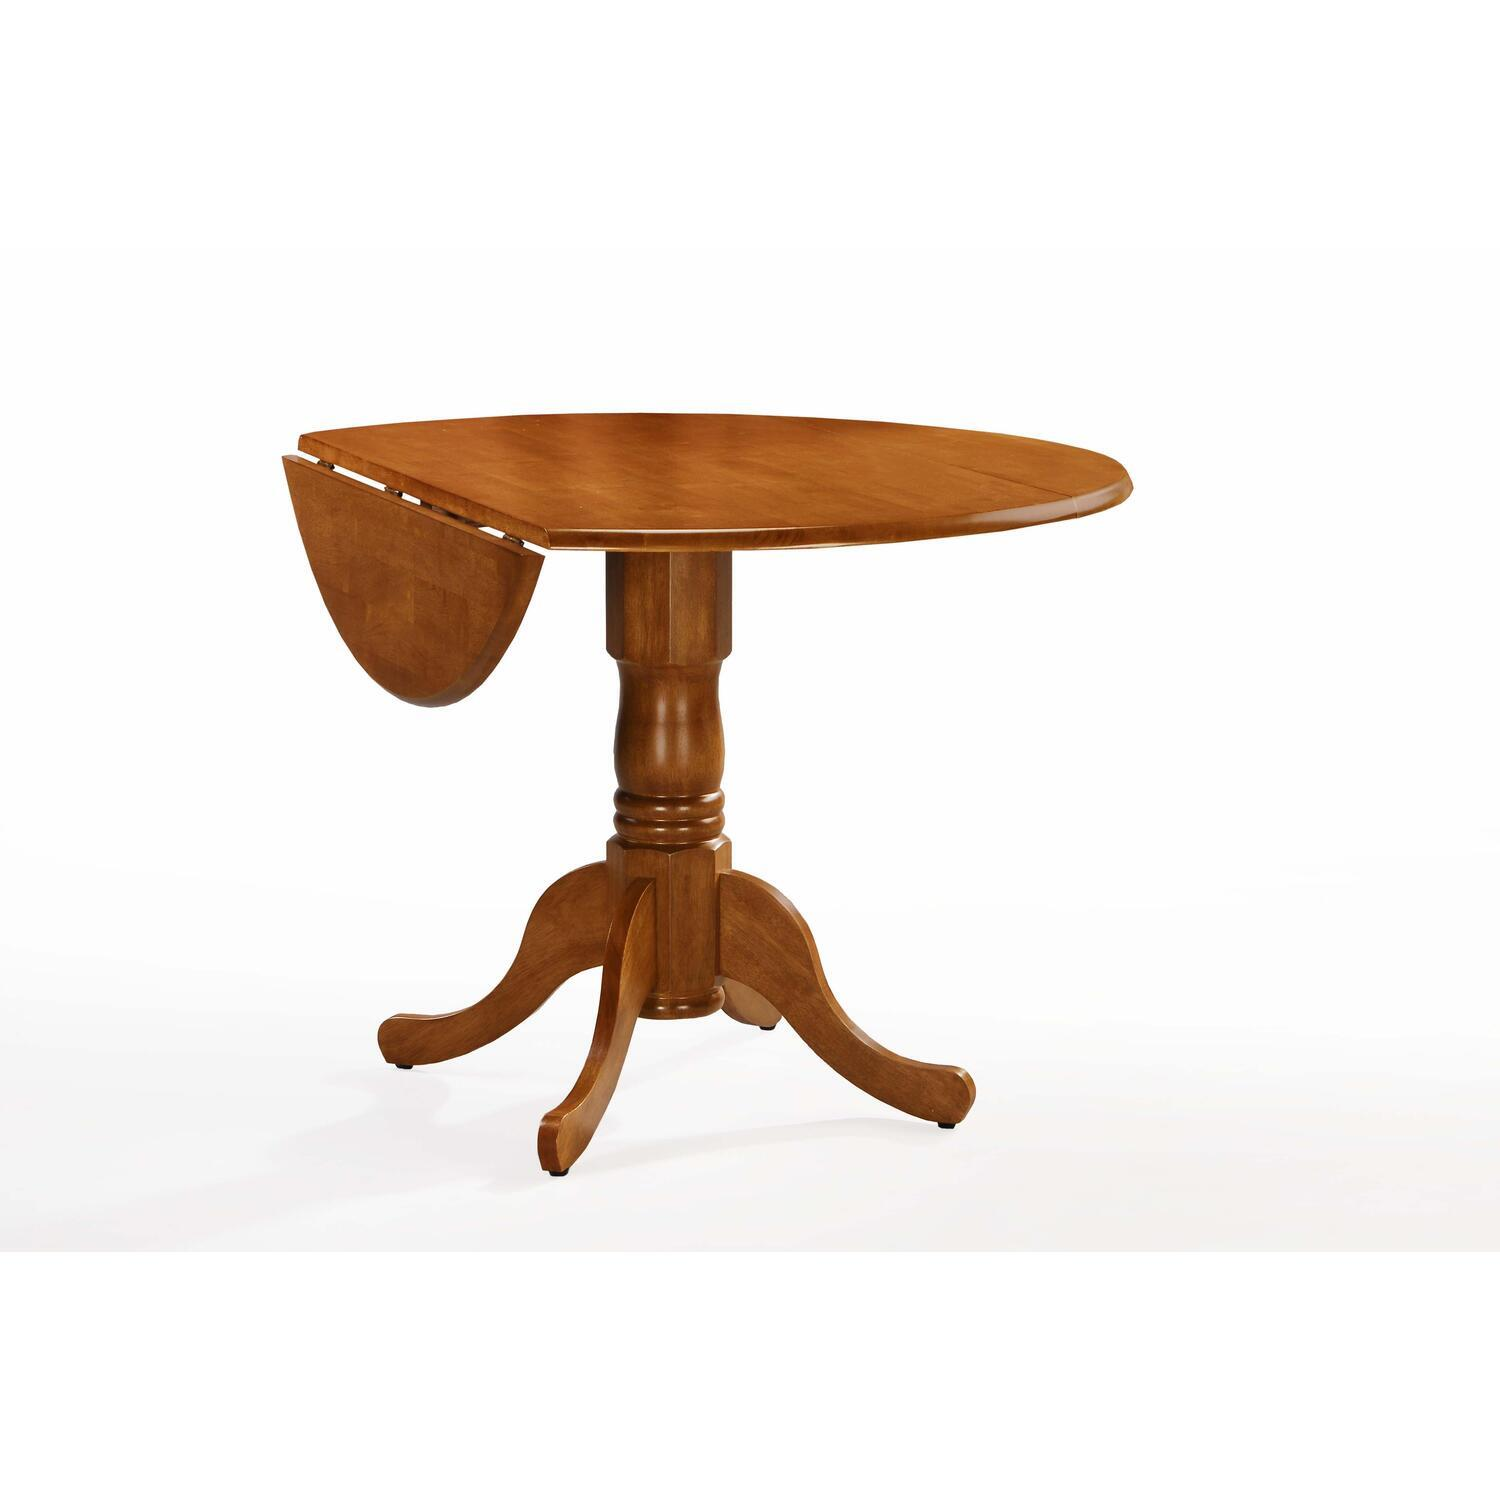 Whitewood 42 round dual drop leaf ped table by oj for Solid wood round dining table with leaf